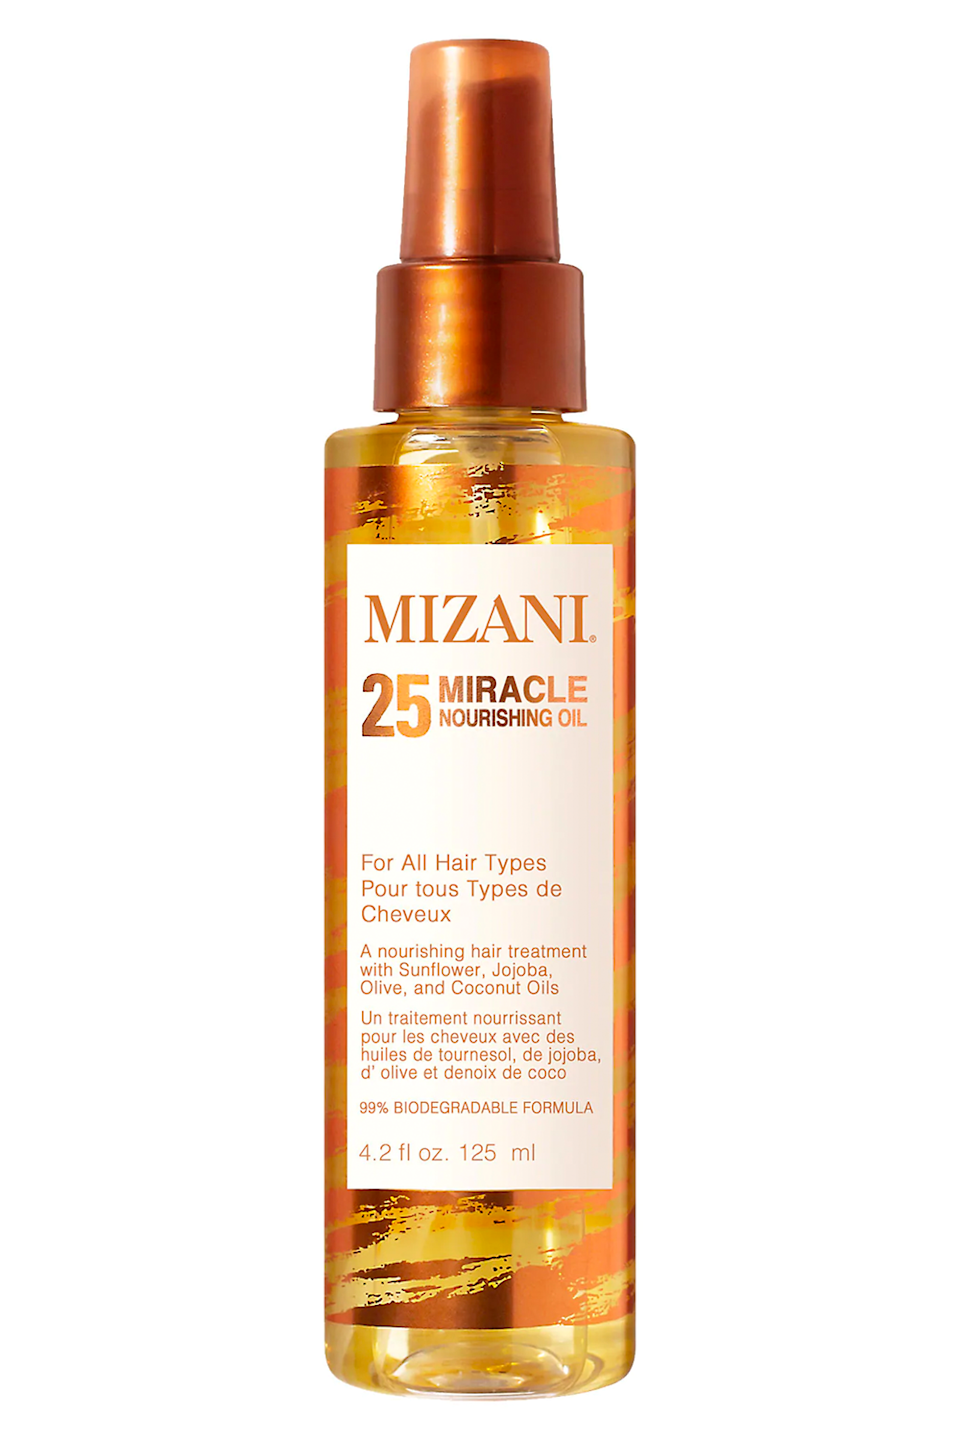 "<p><strong>Mizani</strong></p><p>sephora.com</p><p><strong>$22.00</strong></p><p><a href=""https://go.redirectingat.com?id=74968X1596630&url=https%3A%2F%2Fwww.sephora.com%2Fproduct%2Fmizani-25-miracle-nourishing-oil-P455842&sref=https%3A%2F%2Fwww.cosmopolitan.com%2Fstyle-beauty%2Fbeauty%2Fg32978979%2Fbest-hair-moisturizers%2F"" rel=""nofollow noopener"" target=""_blank"" data-ylk=""slk:Shop Now"" class=""link rapid-noclick-resp"">Shop Now</a></p><p>The best thing about this hydrating <a href=""https://www.cosmopolitan.com/style-beauty/beauty/news/a45584/best-oils-for-your-hair/"" rel=""nofollow noopener"" target=""_blank"" data-ylk=""slk:hair oil"" class=""link rapid-noclick-resp"">hair oil</a> from Mizani is that it can be used on any hair texture. The formula (which works on dry or wet hair, BTW) calls on three oils—coconut, jojoba, and sunflower seed—to <strong>add back moisture, shine, and softness</strong> every time you use it.</p>"